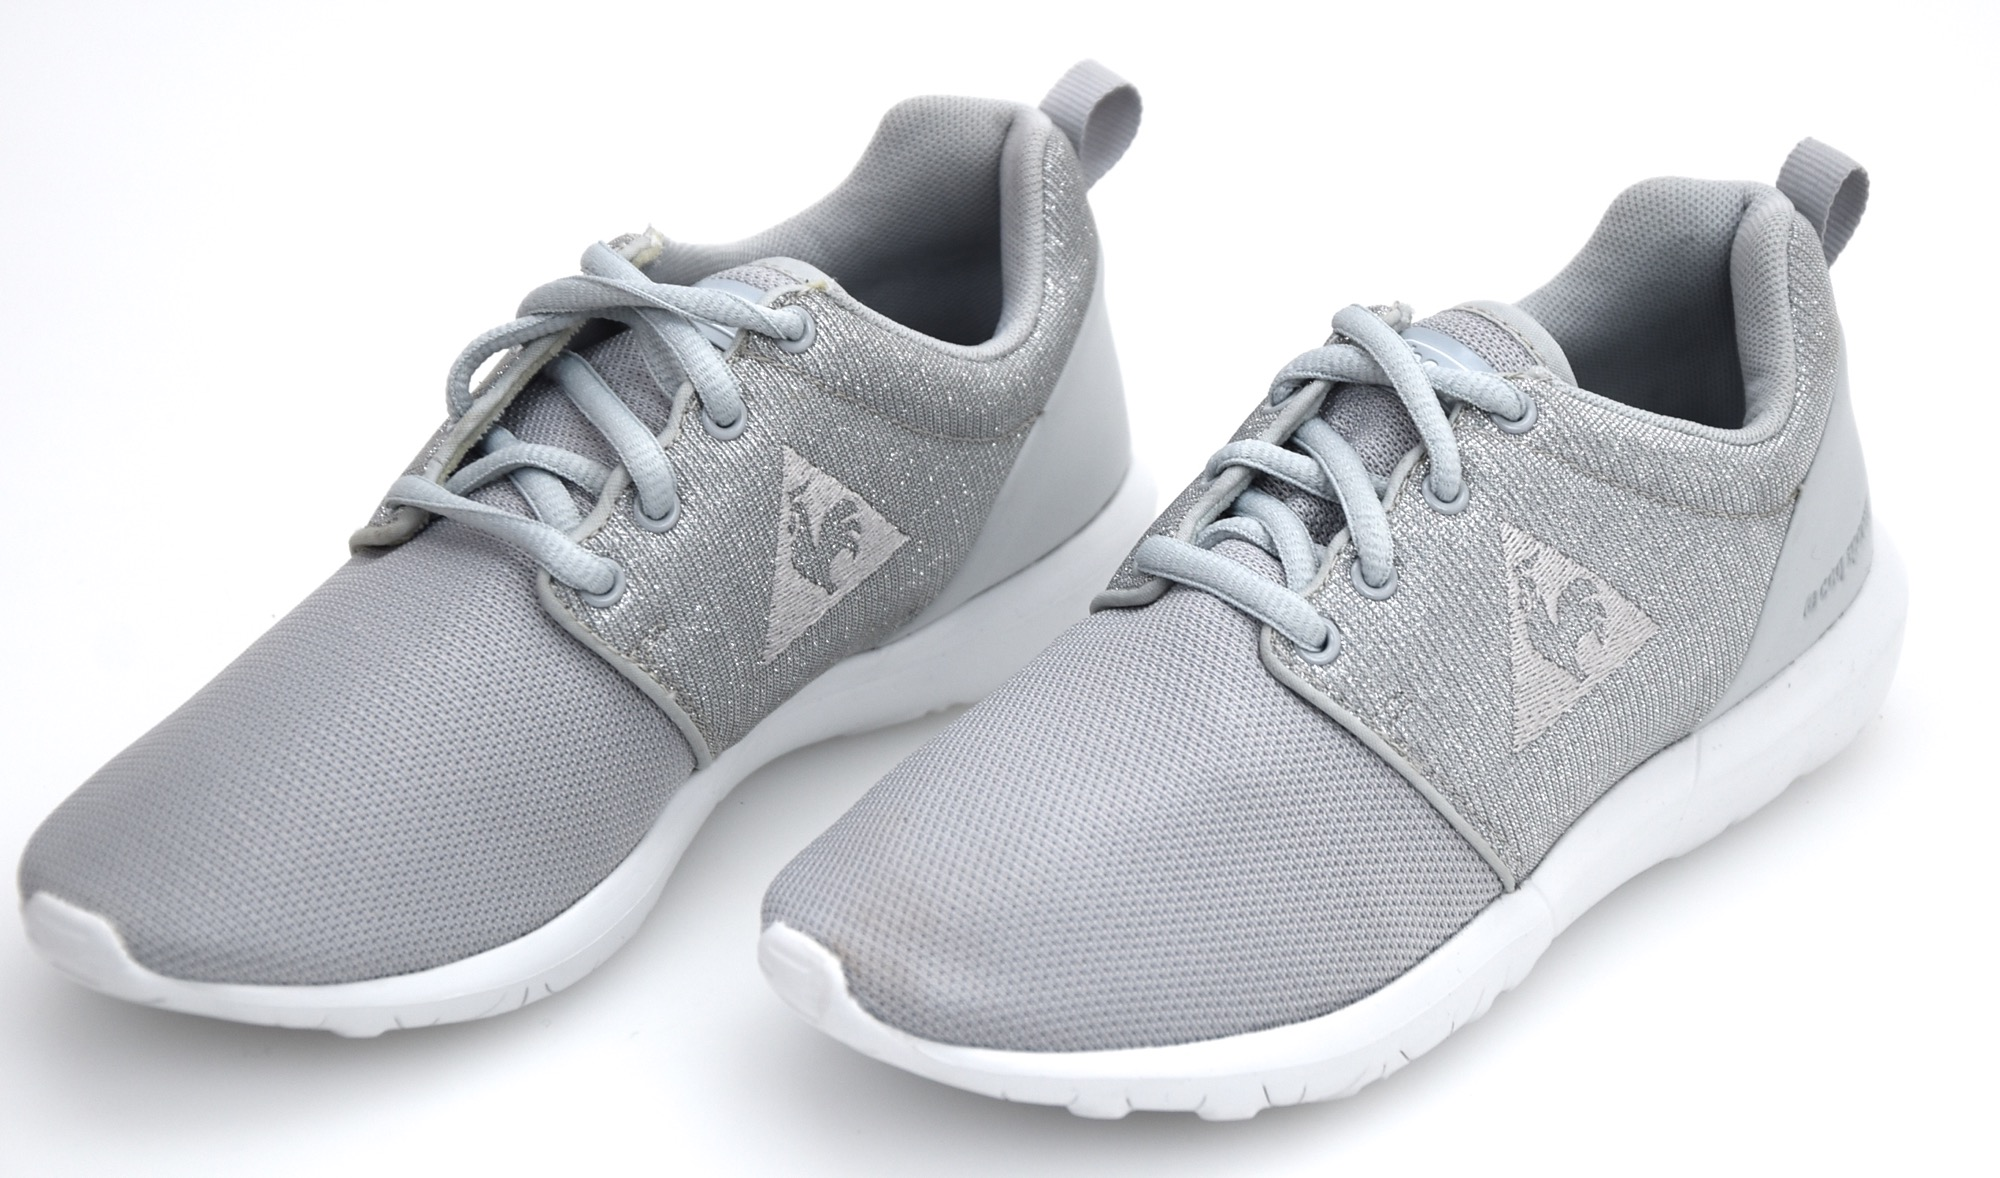 561561cd3e79 LE COQ SPORTIF WOMAN SNEAKER SHOES SYNTHETIC CODE 1620387 DYNACOMF W GLITTER